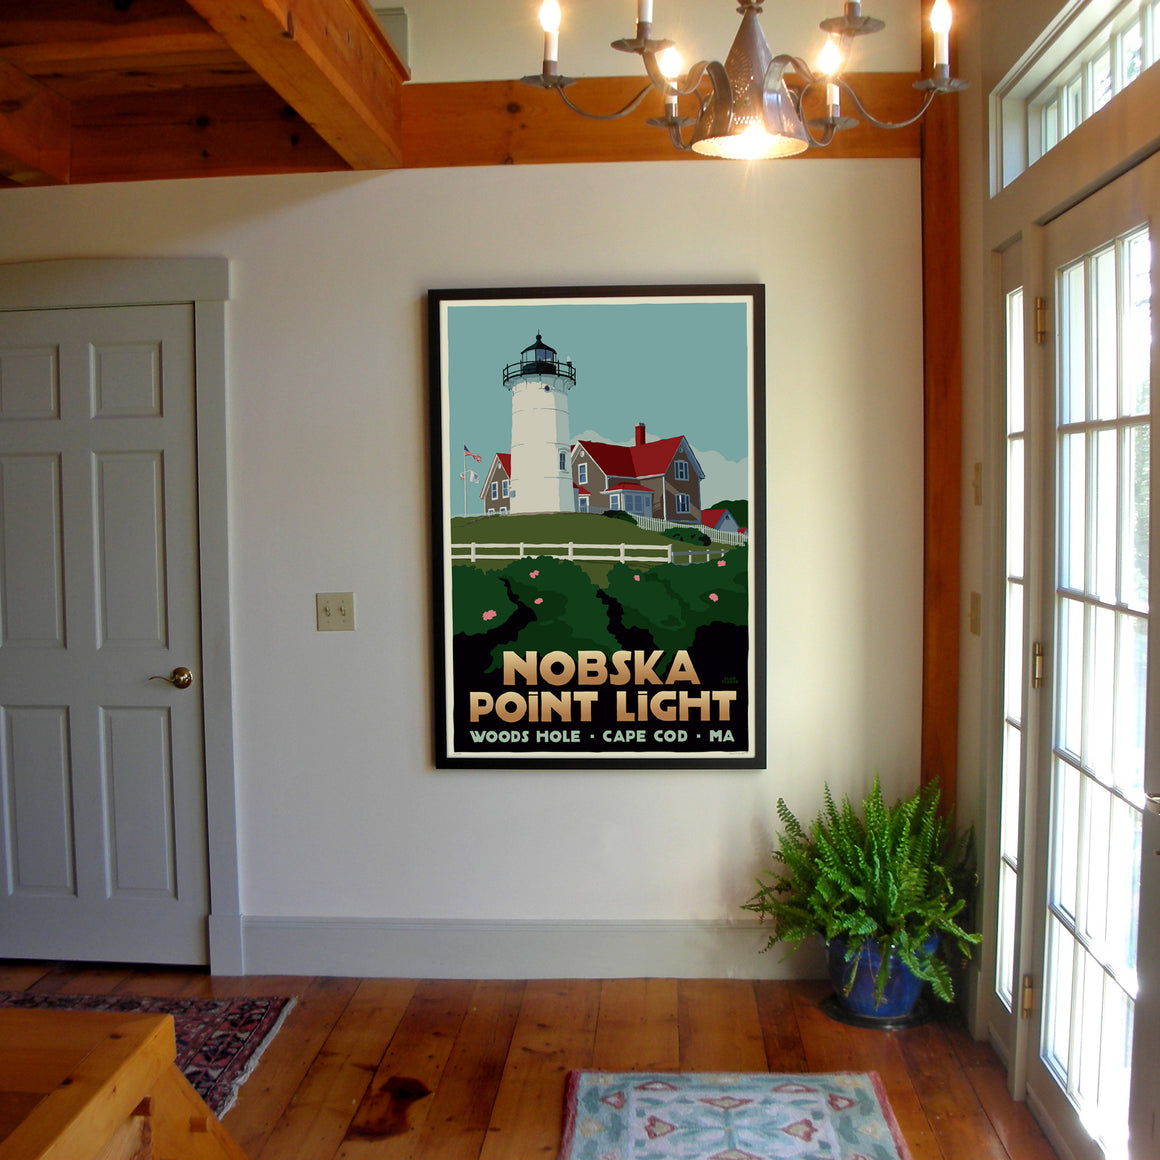 "Nobska Point Light Art Print 36"" x 53"" Framed Travel Poster - Massachusetts"